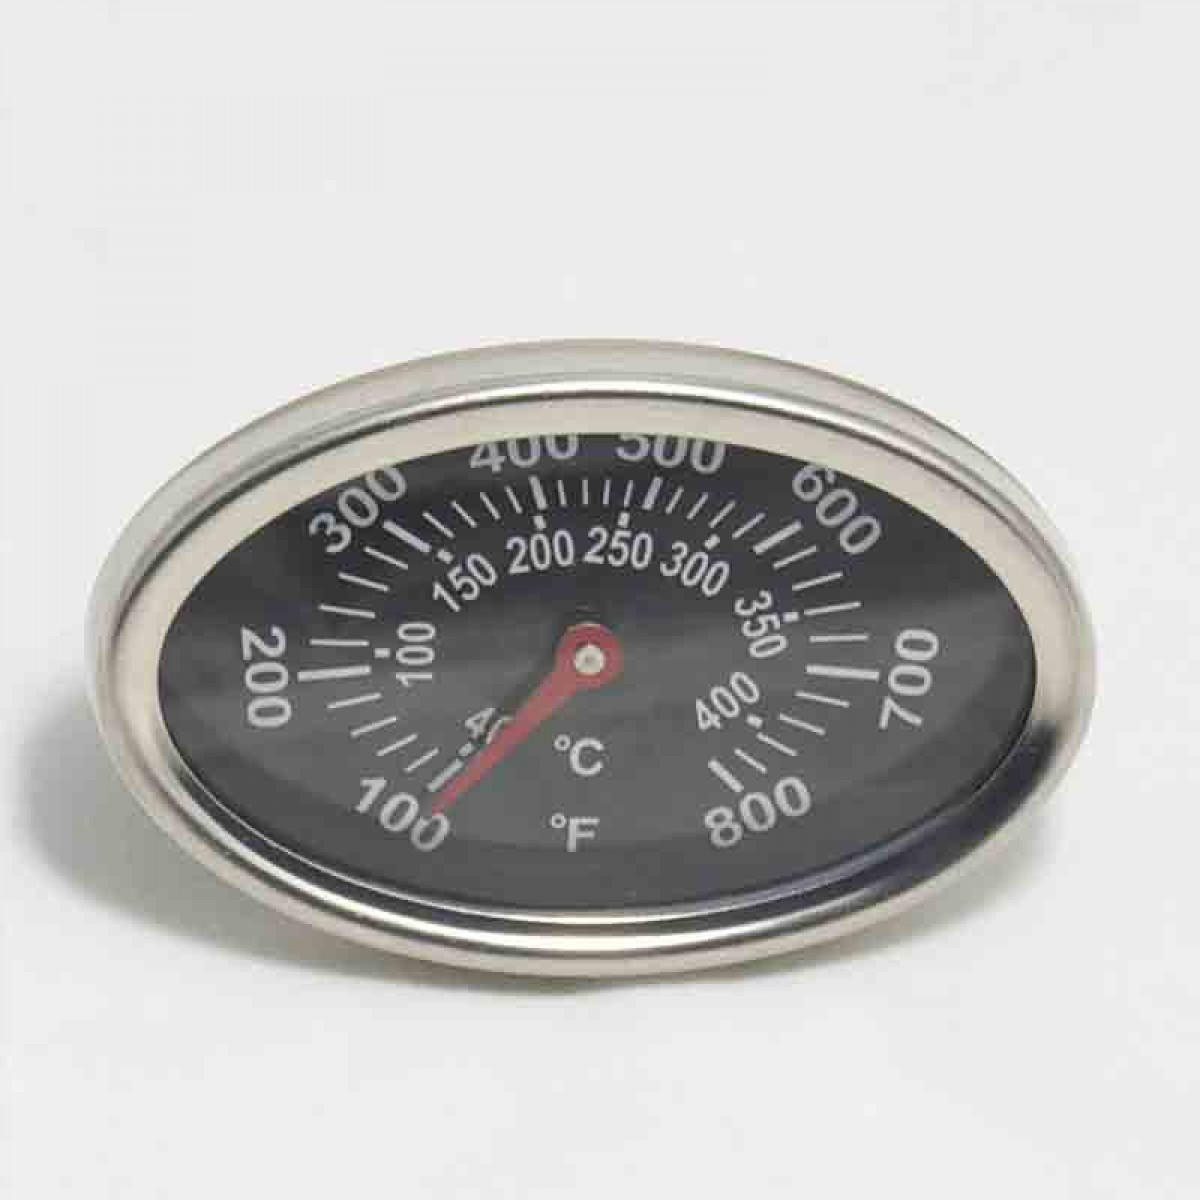 American OutDoor Grill Thermometer at iBuyBarbecues.com